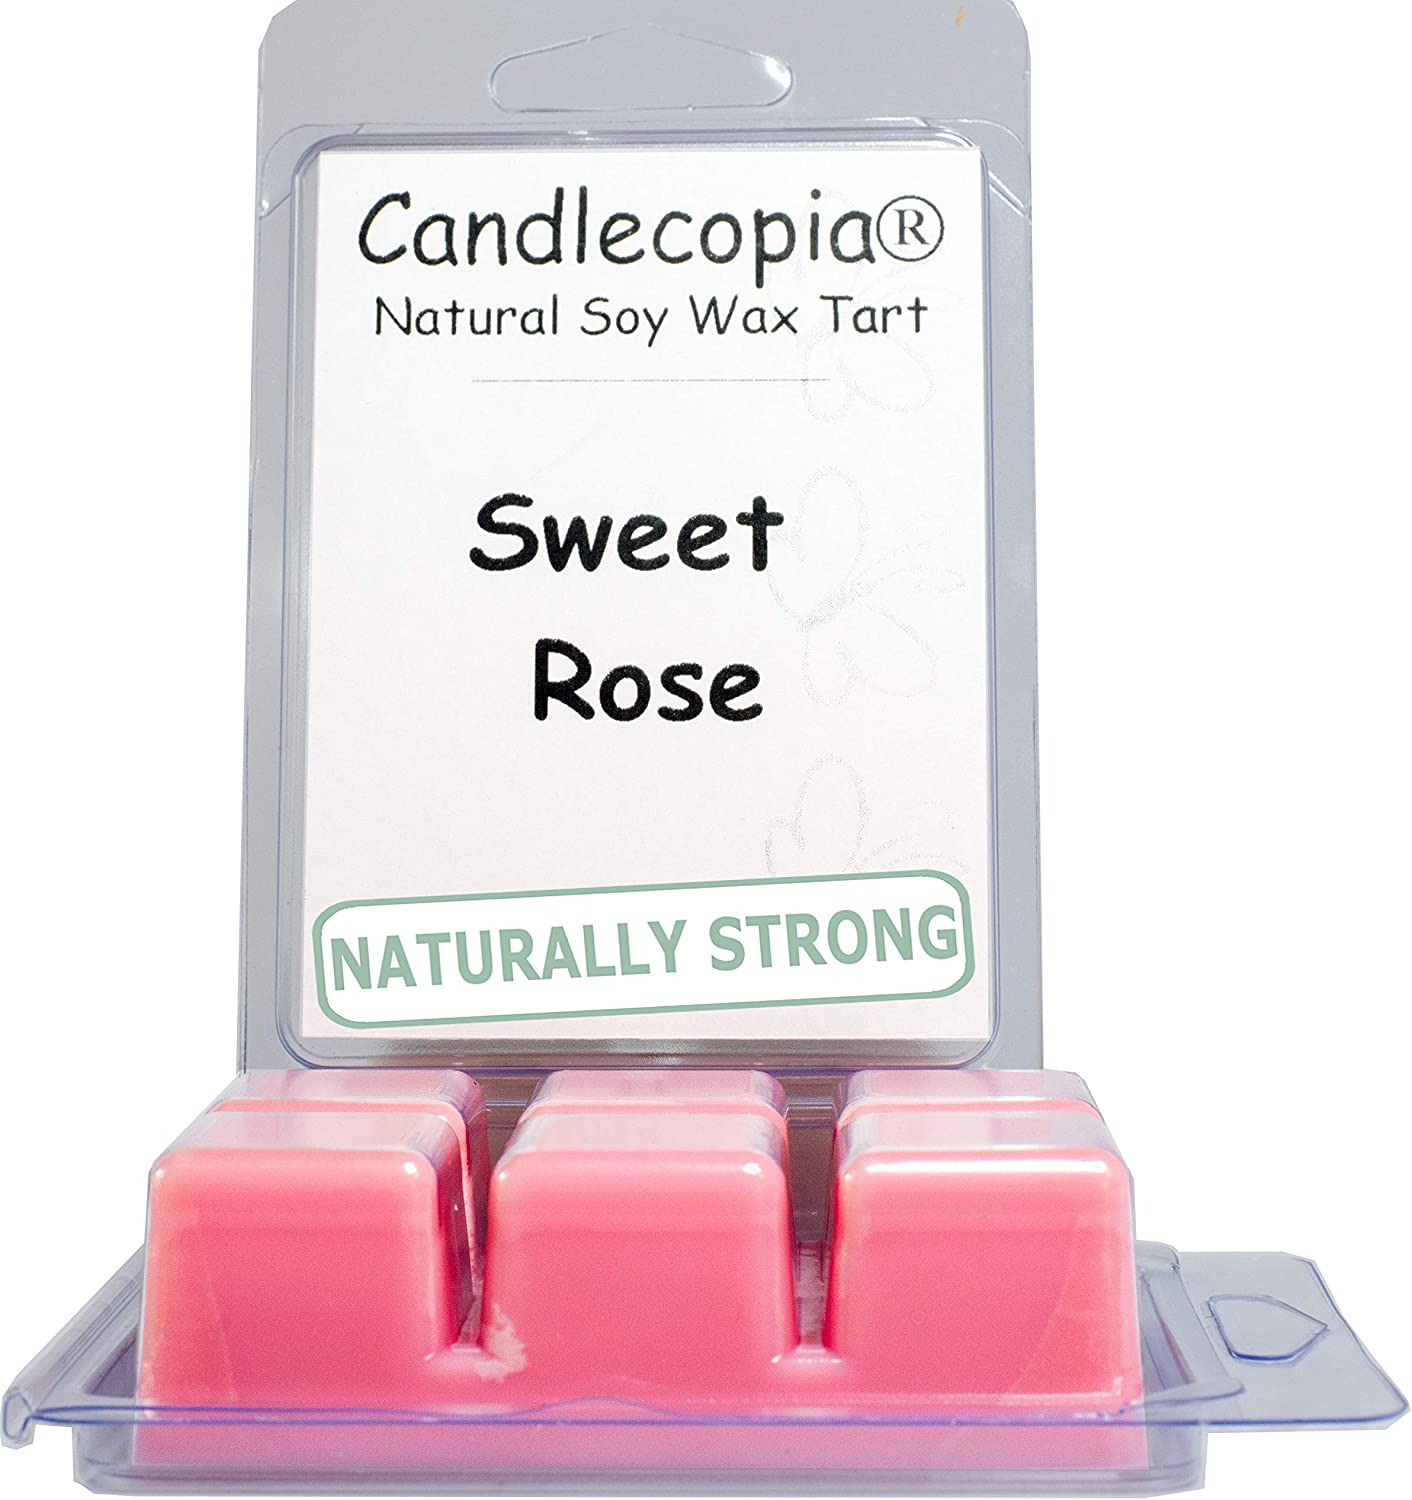 Candlecopia Sweet Rose Strongly Scented Hand Poured Vegan Wax Melts, 12 Scented Wax Cubes, 6.4 Ounces in 2 x 6-Packs